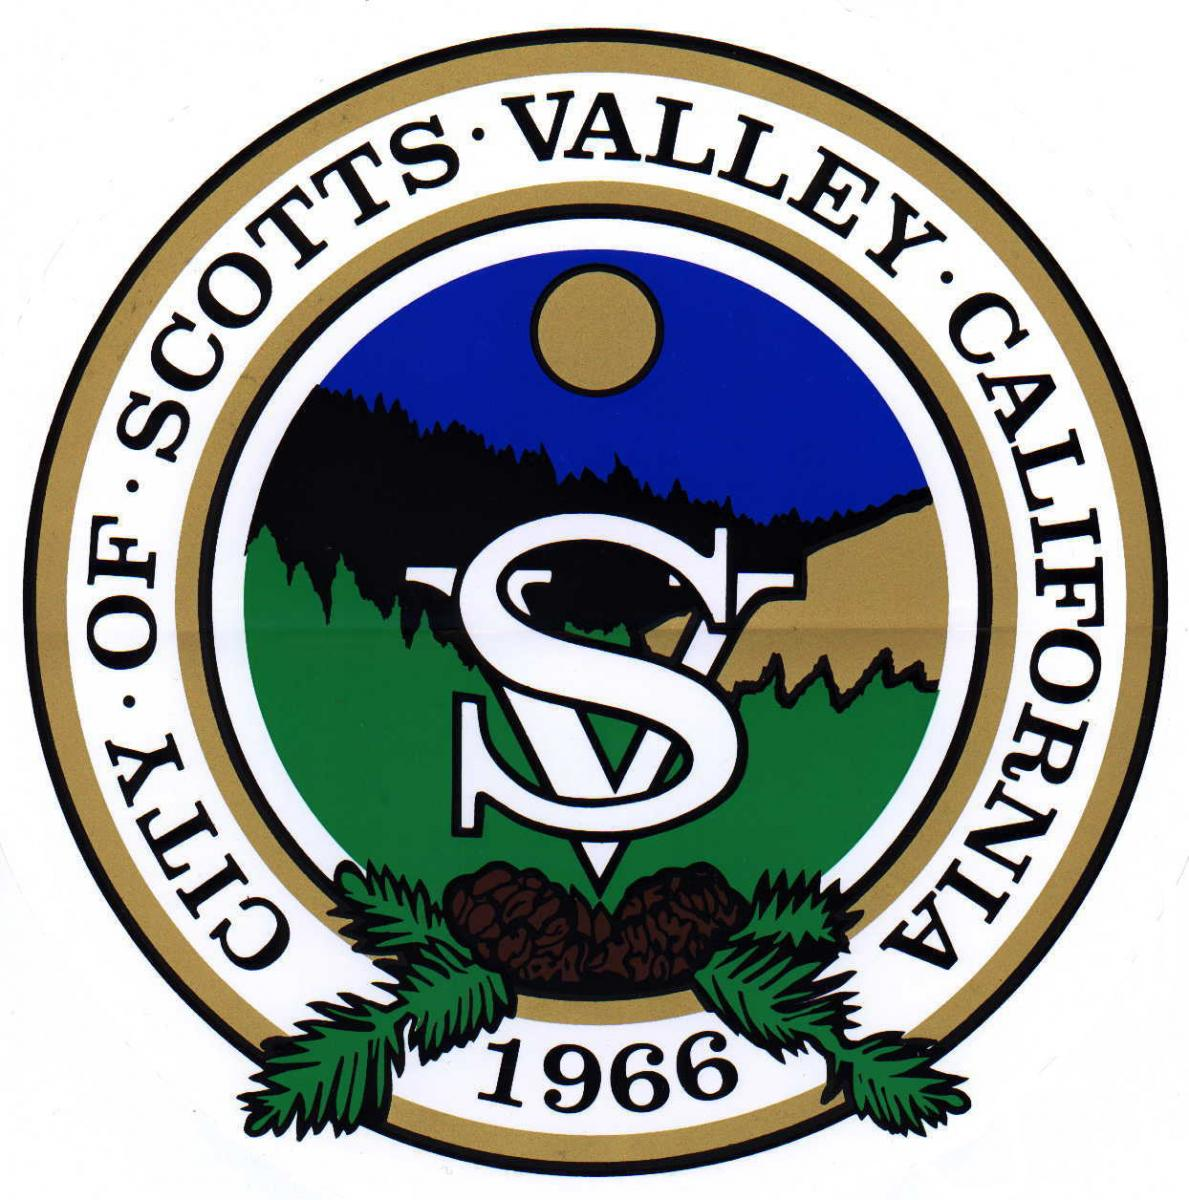 City of Scotts Valley Logo